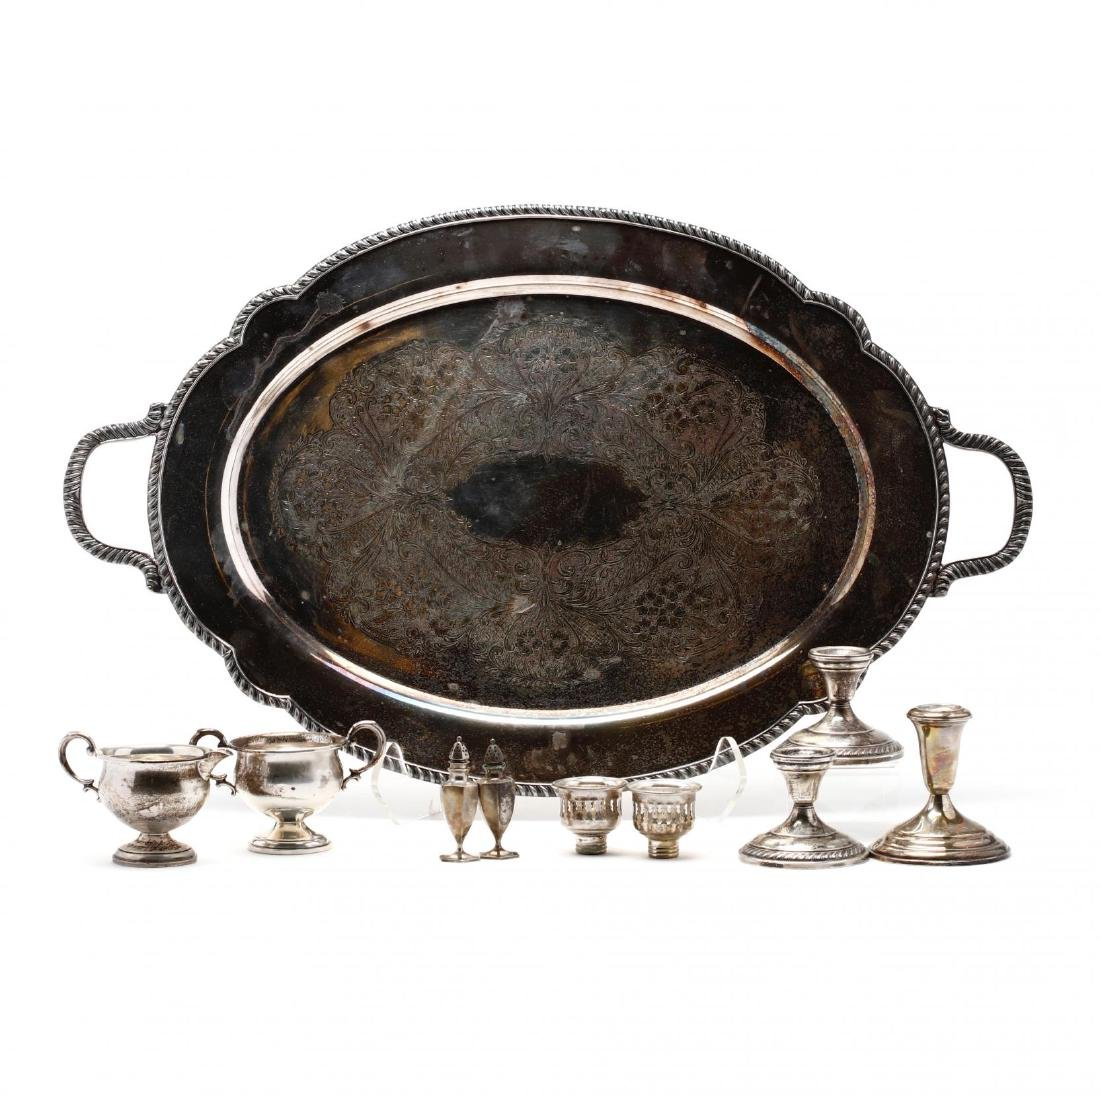 A Silverplate Tray with Sterling Silver Holloware